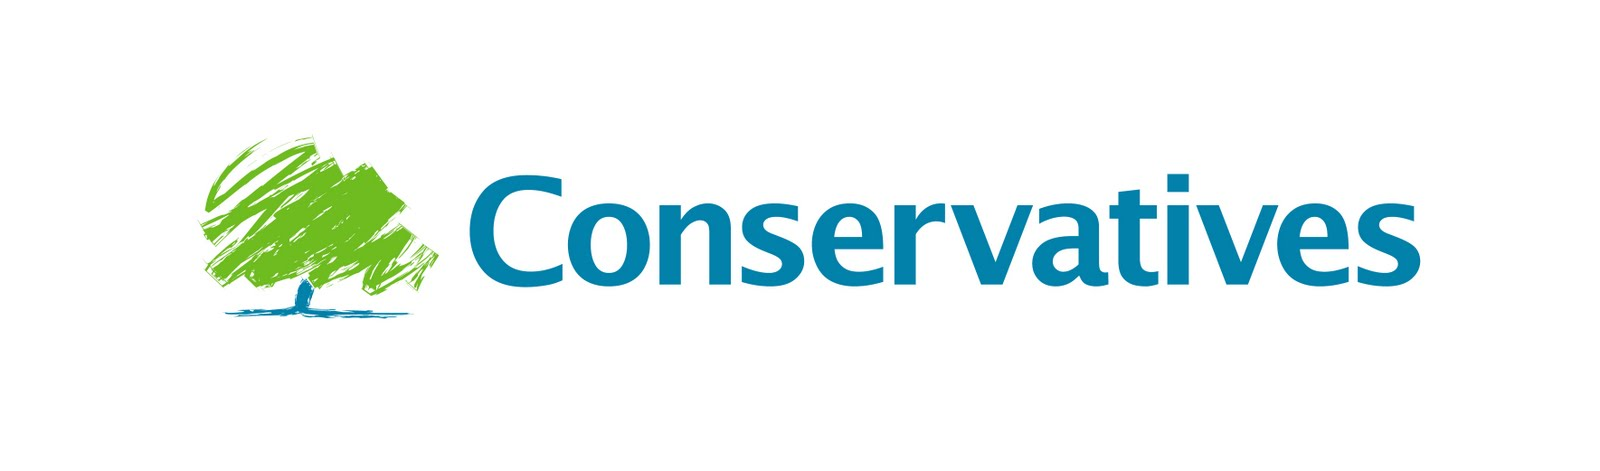 Bain Capital Ventures Logo As the Conservative party